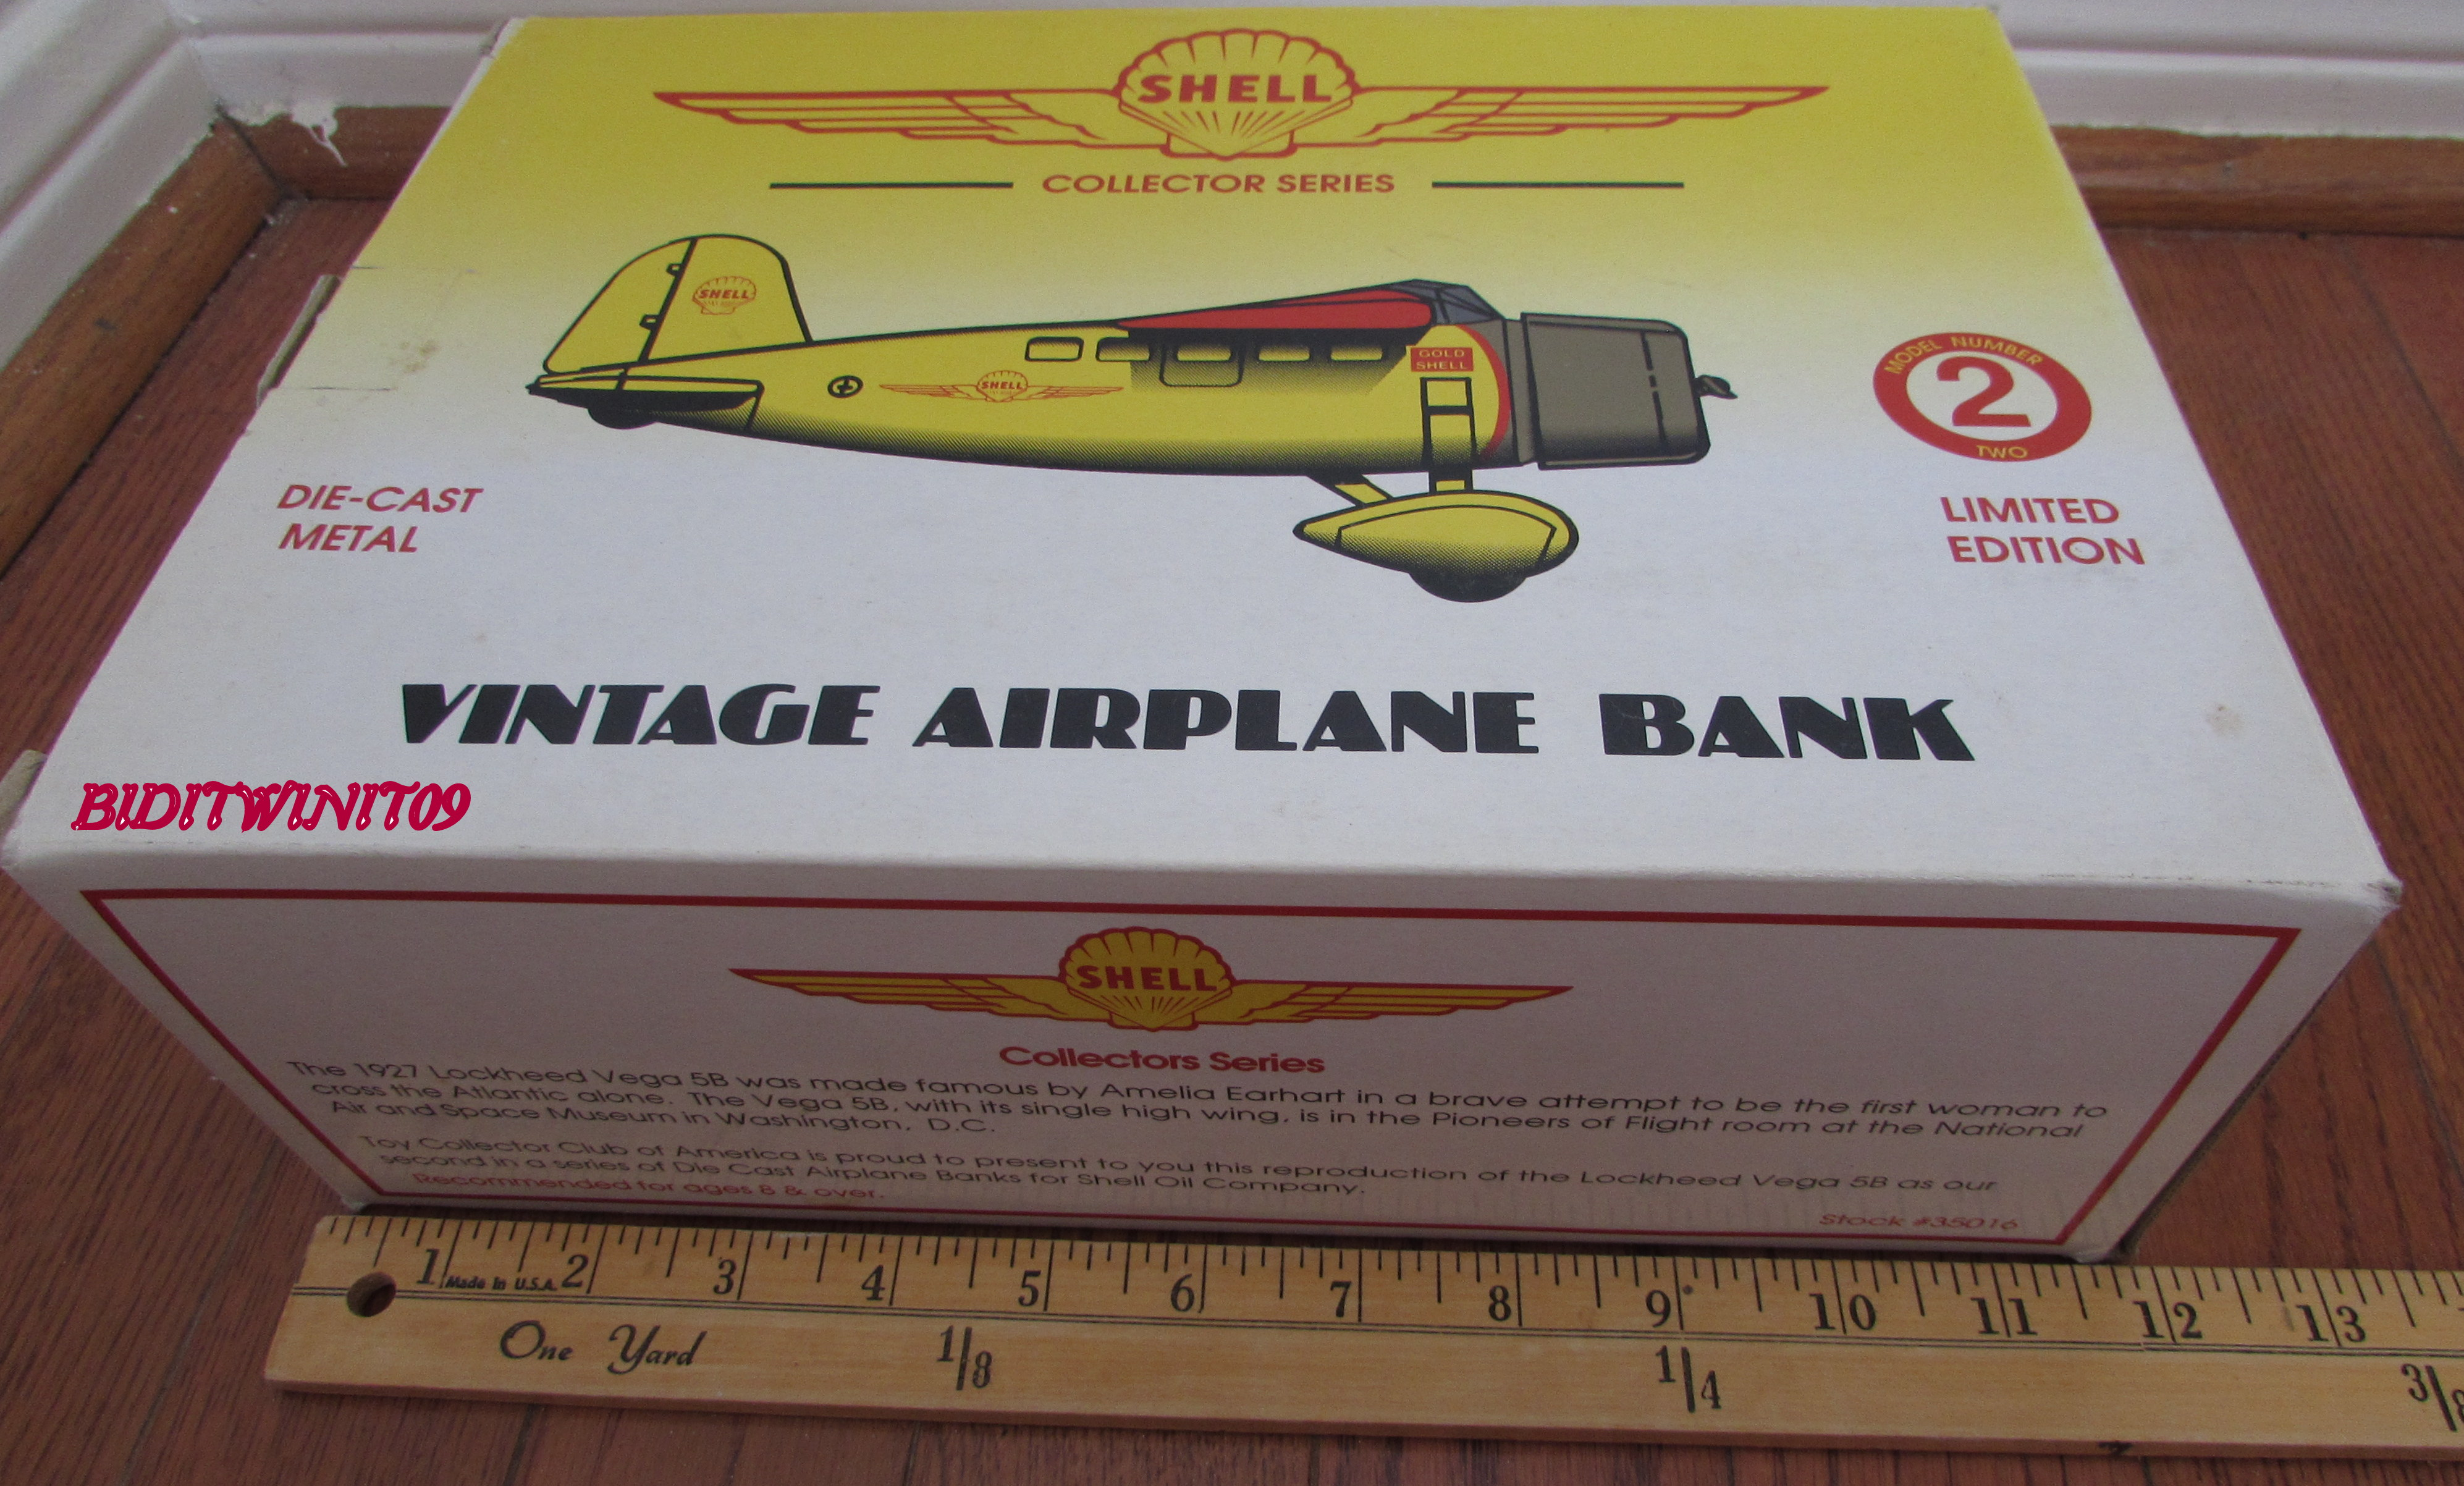 SHELL LOCKHEED ORION VINTAGE AIRPLANE BANK #2 E+